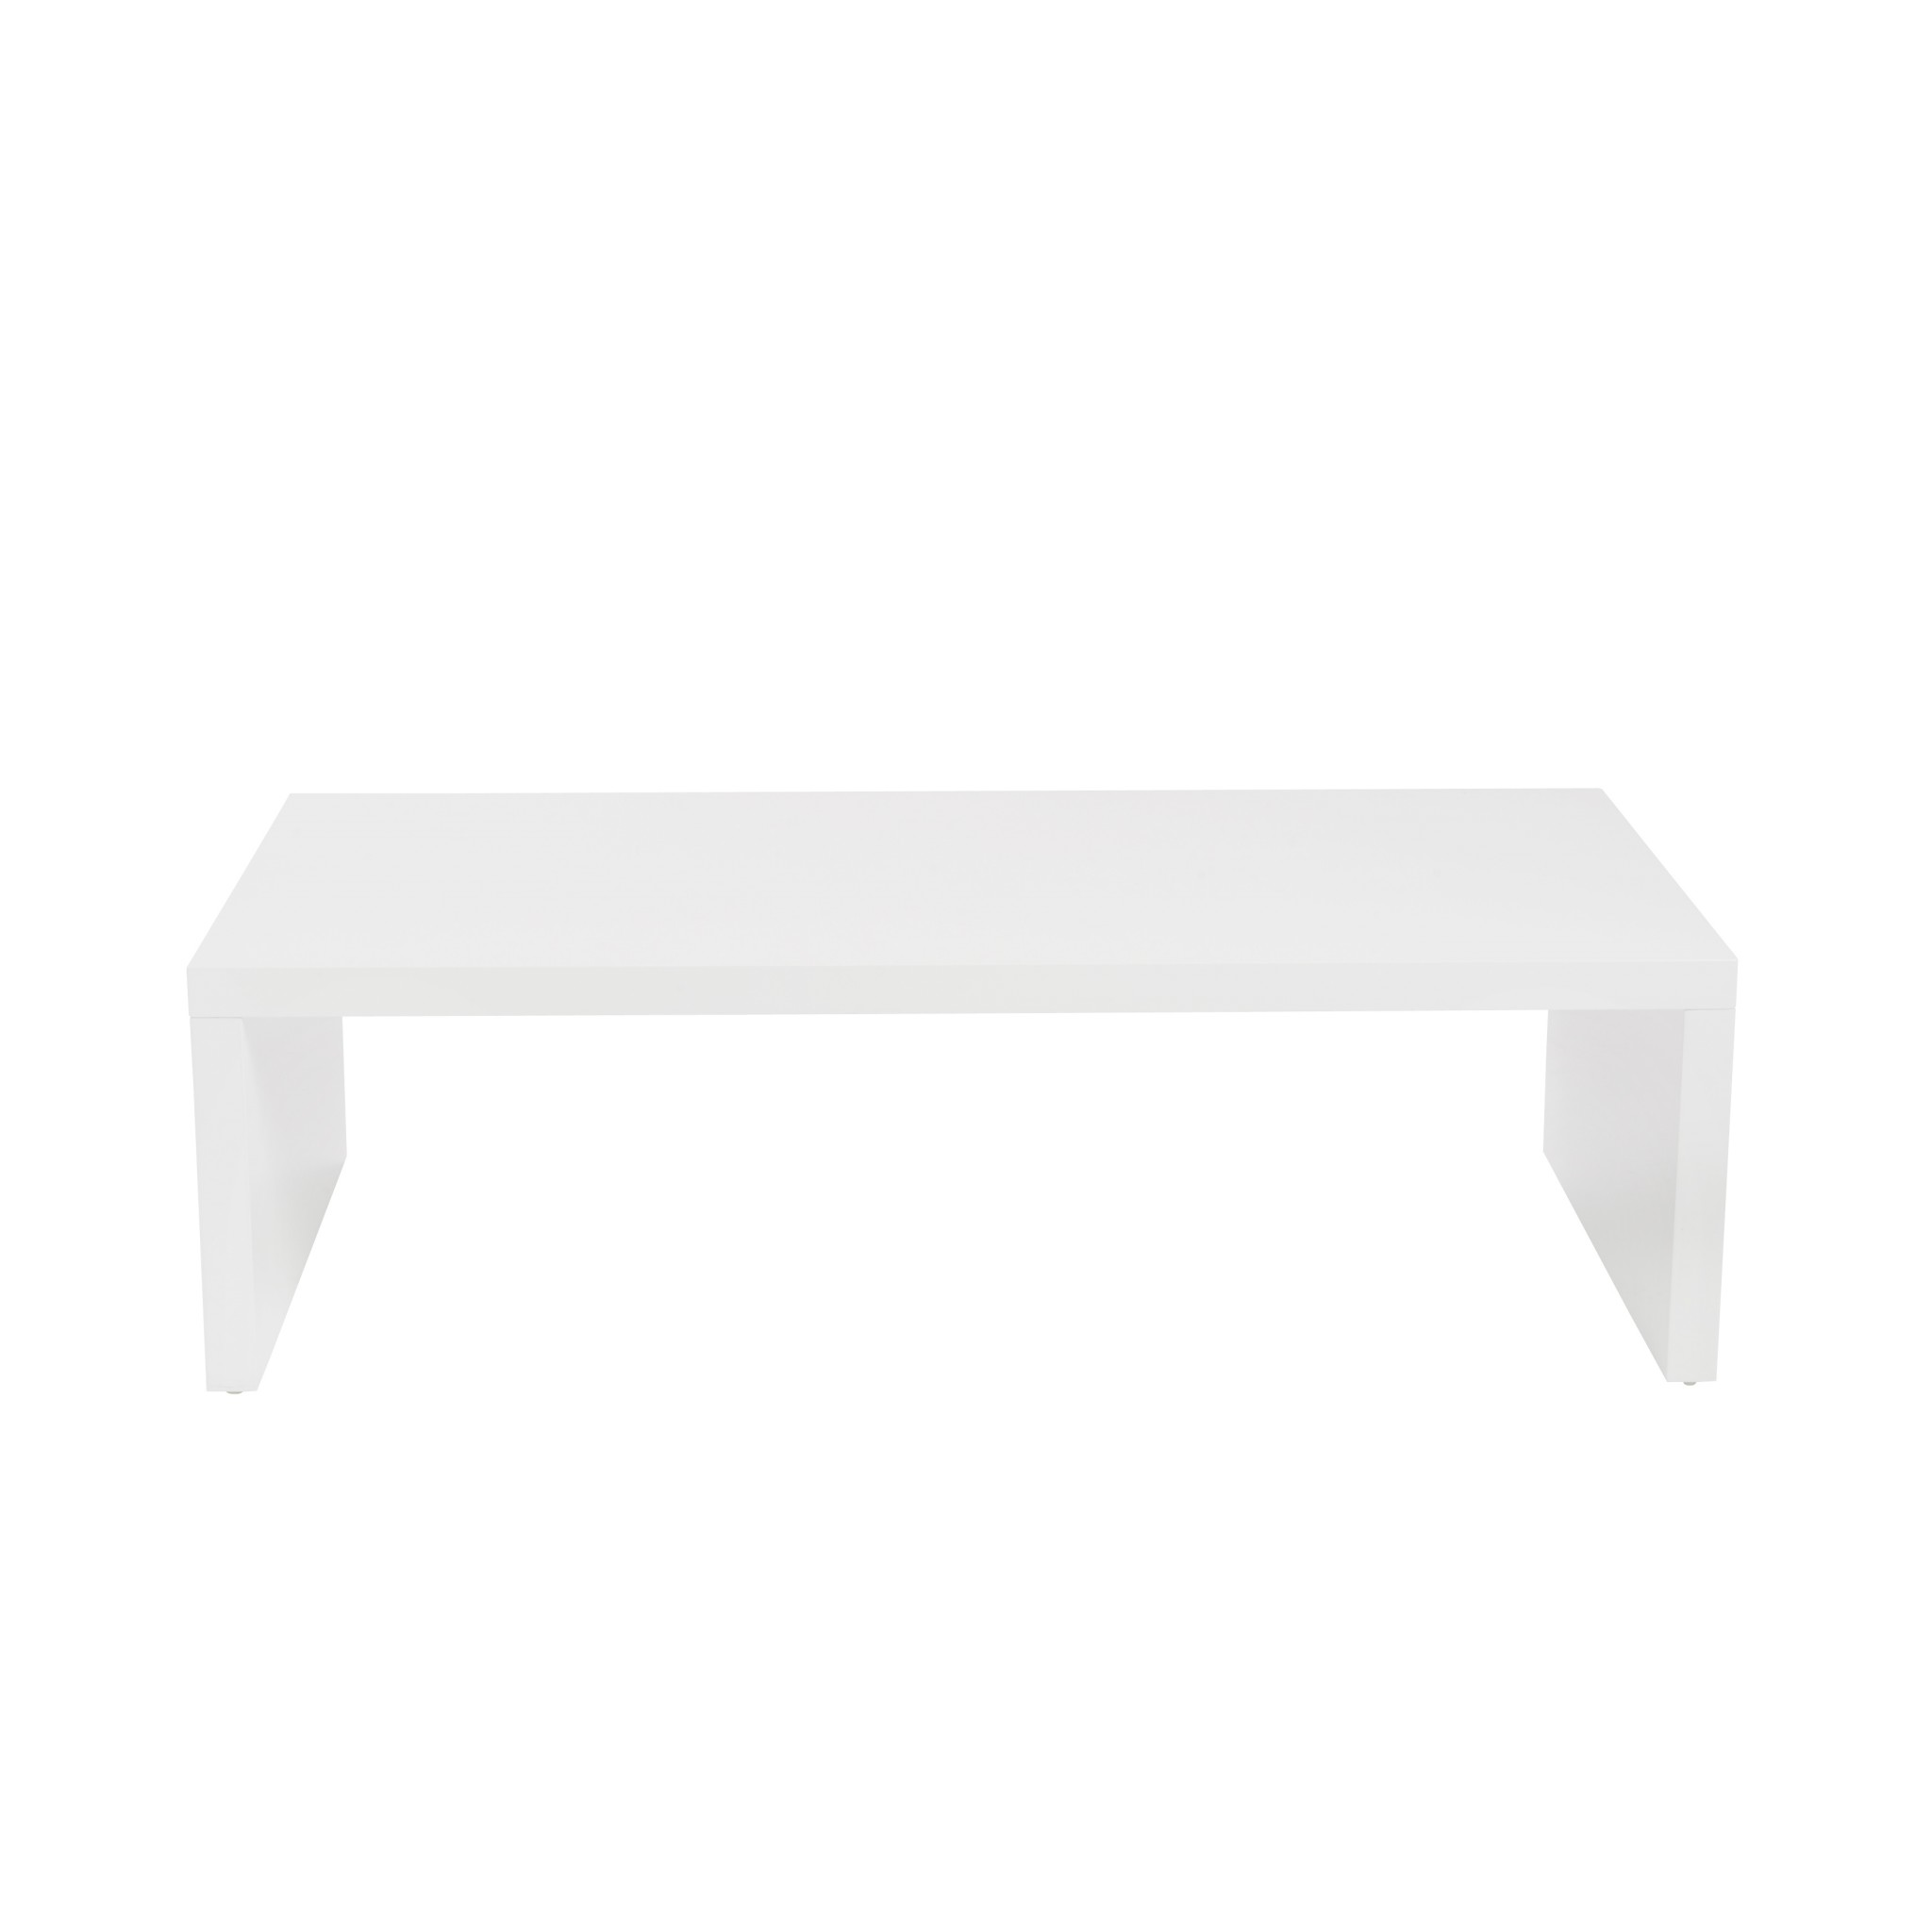 "47.25"" X 23.63"" X 13.98"" High Gloss White Lacquered MDF Rectangle Coffee Table"